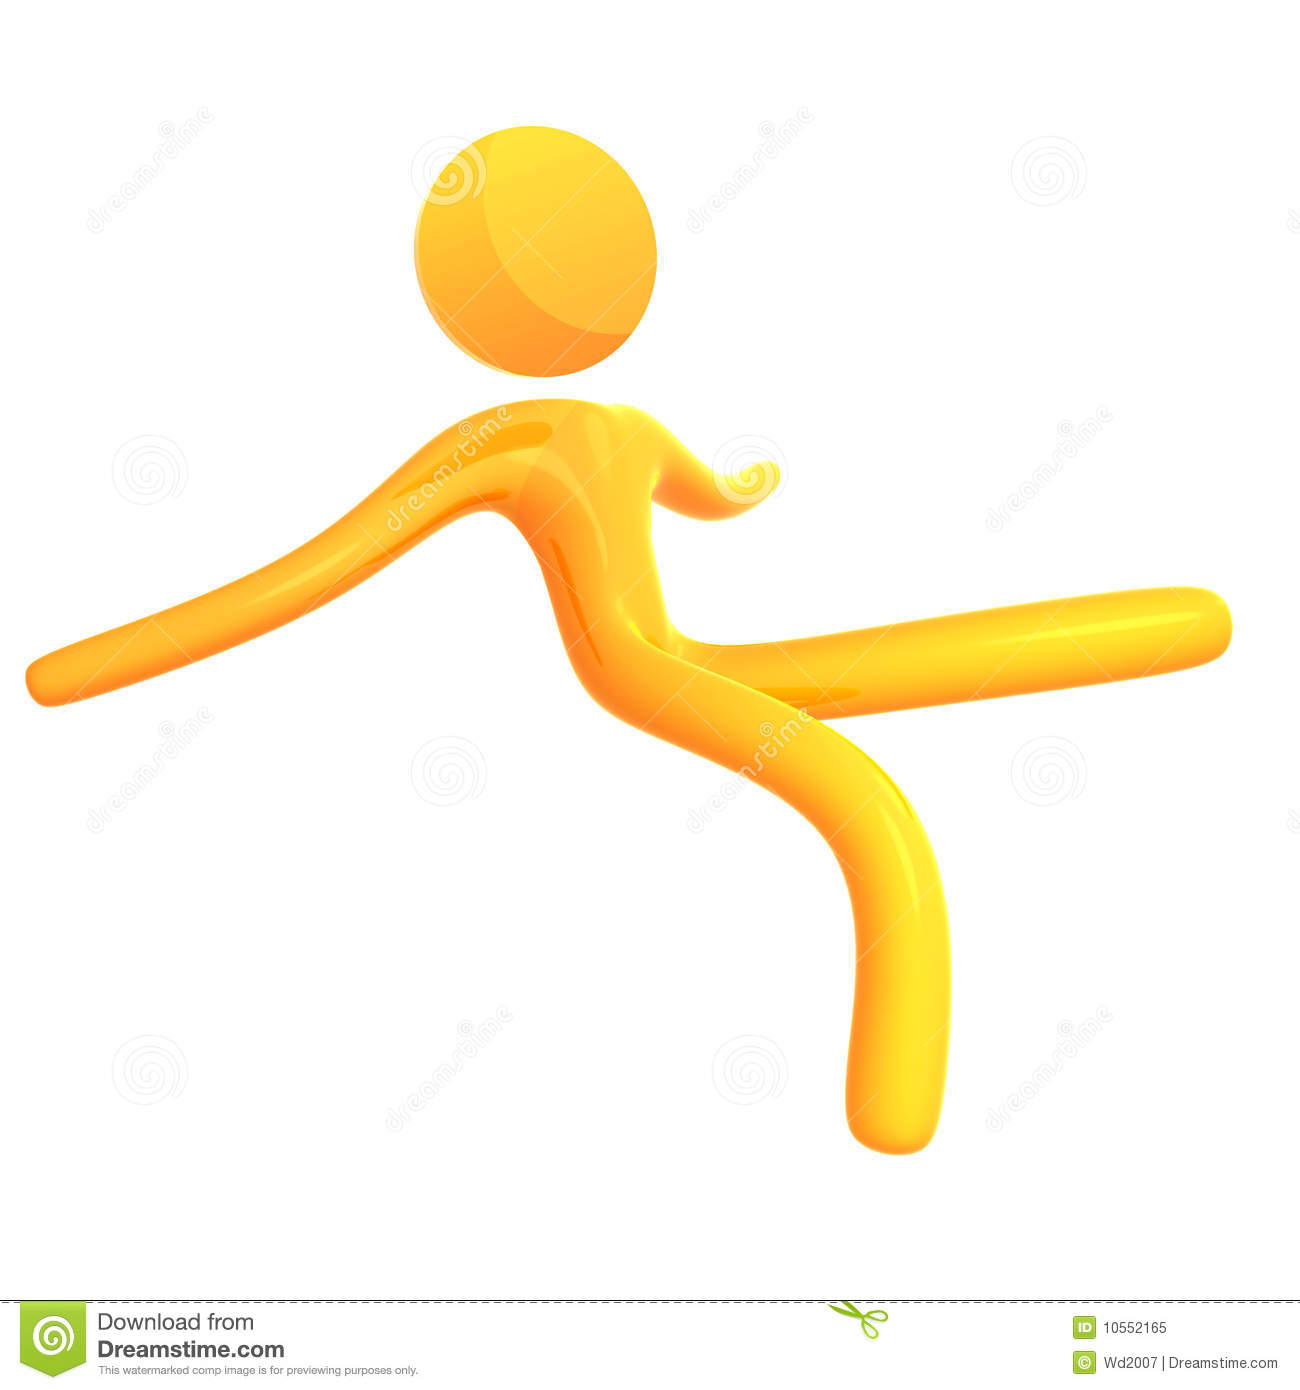 Older Person Falling Clip Art Http   Www Dreamstime Com Royalty Free